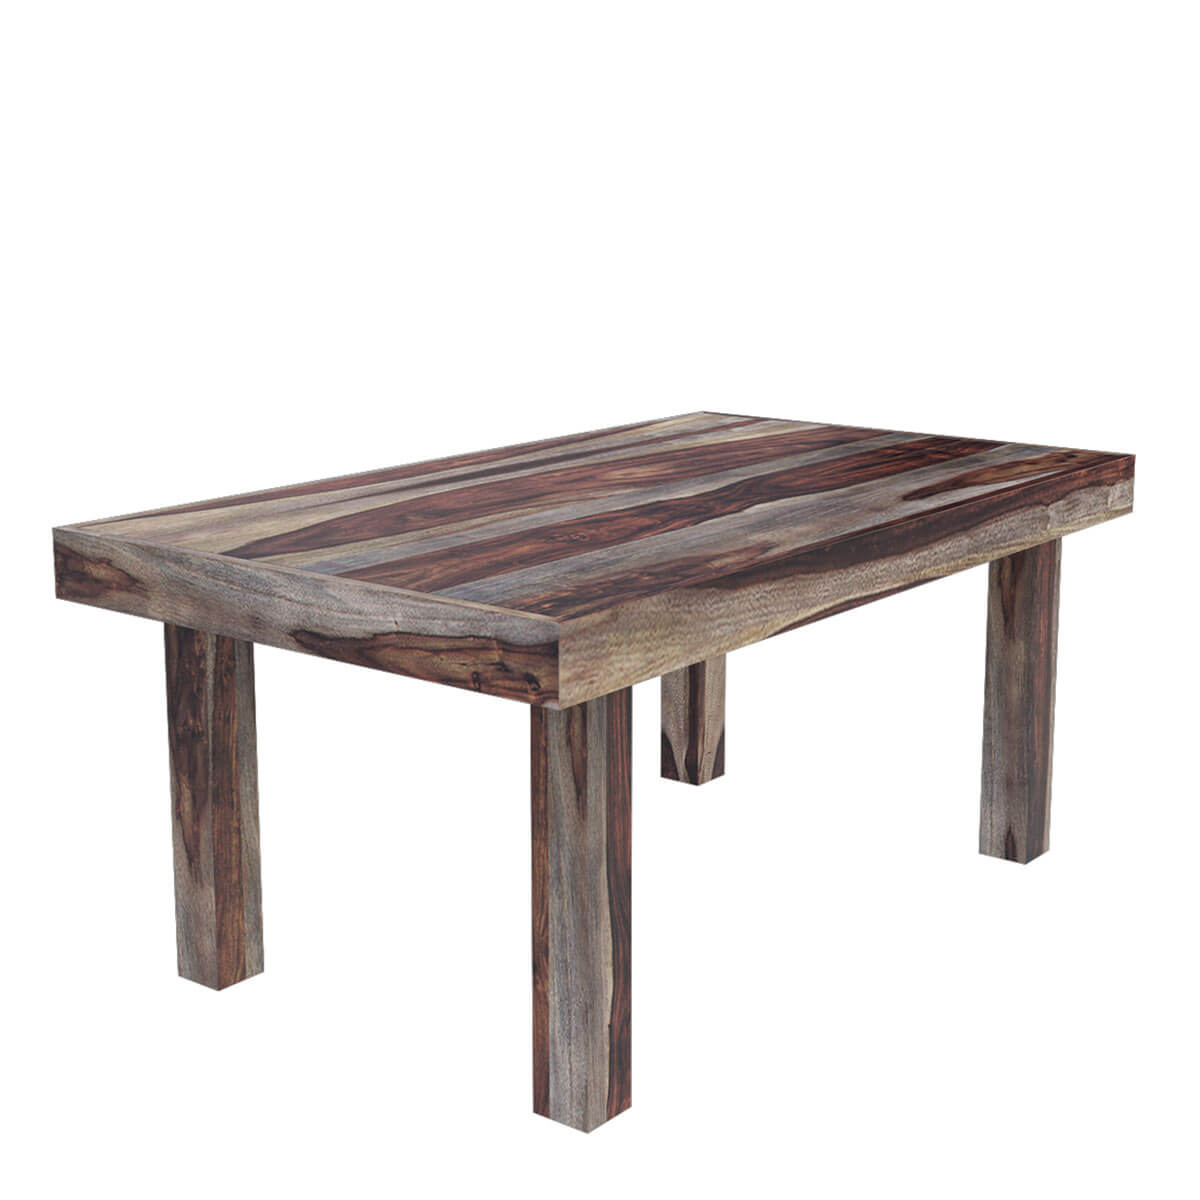 Solid Wood Casual Rustic Dining Room Table And Chair Set